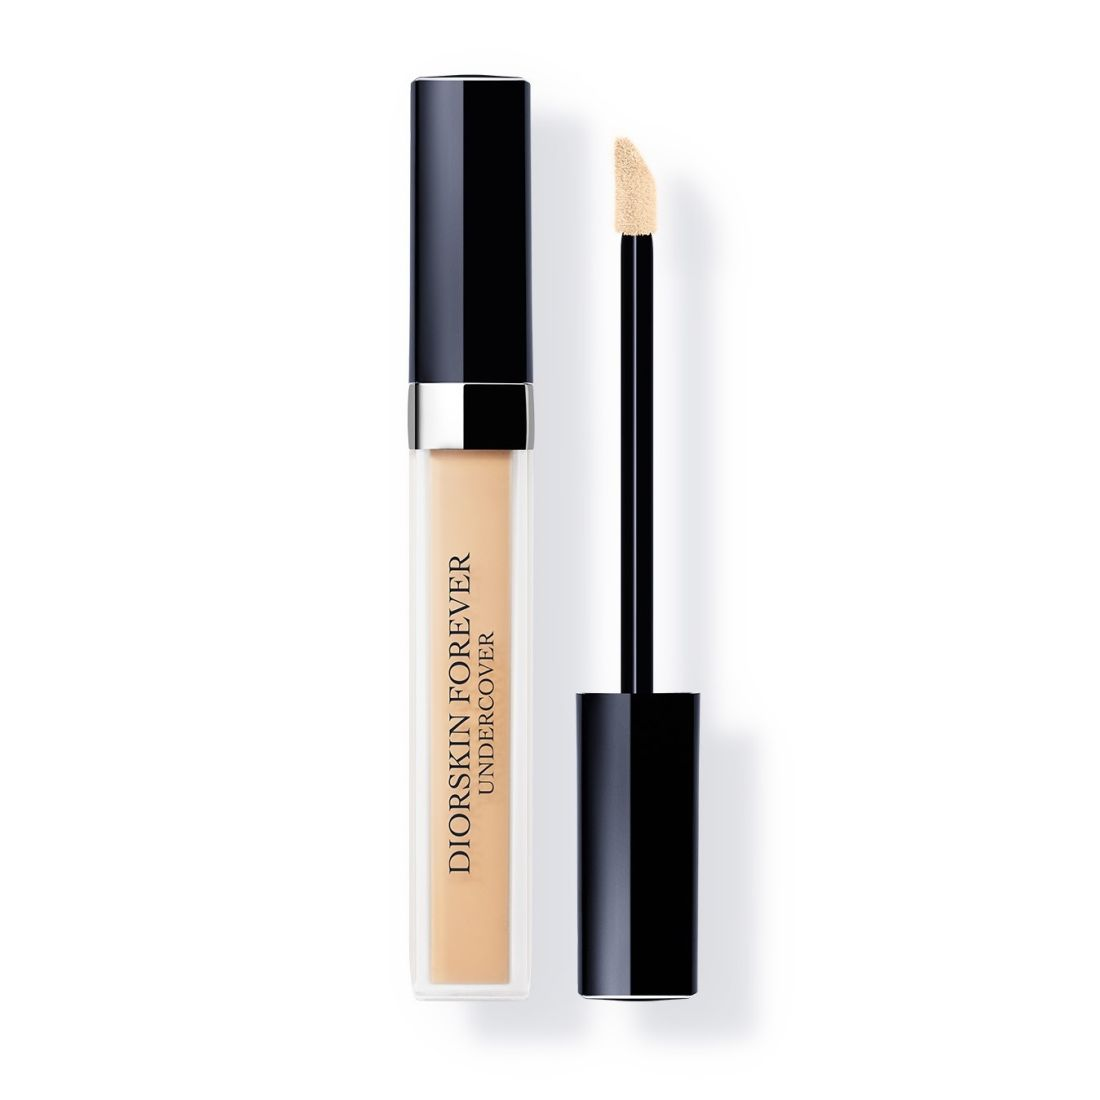 Christian Dior Diorskin Forever Undercover Concealer 10ml 031 Sand